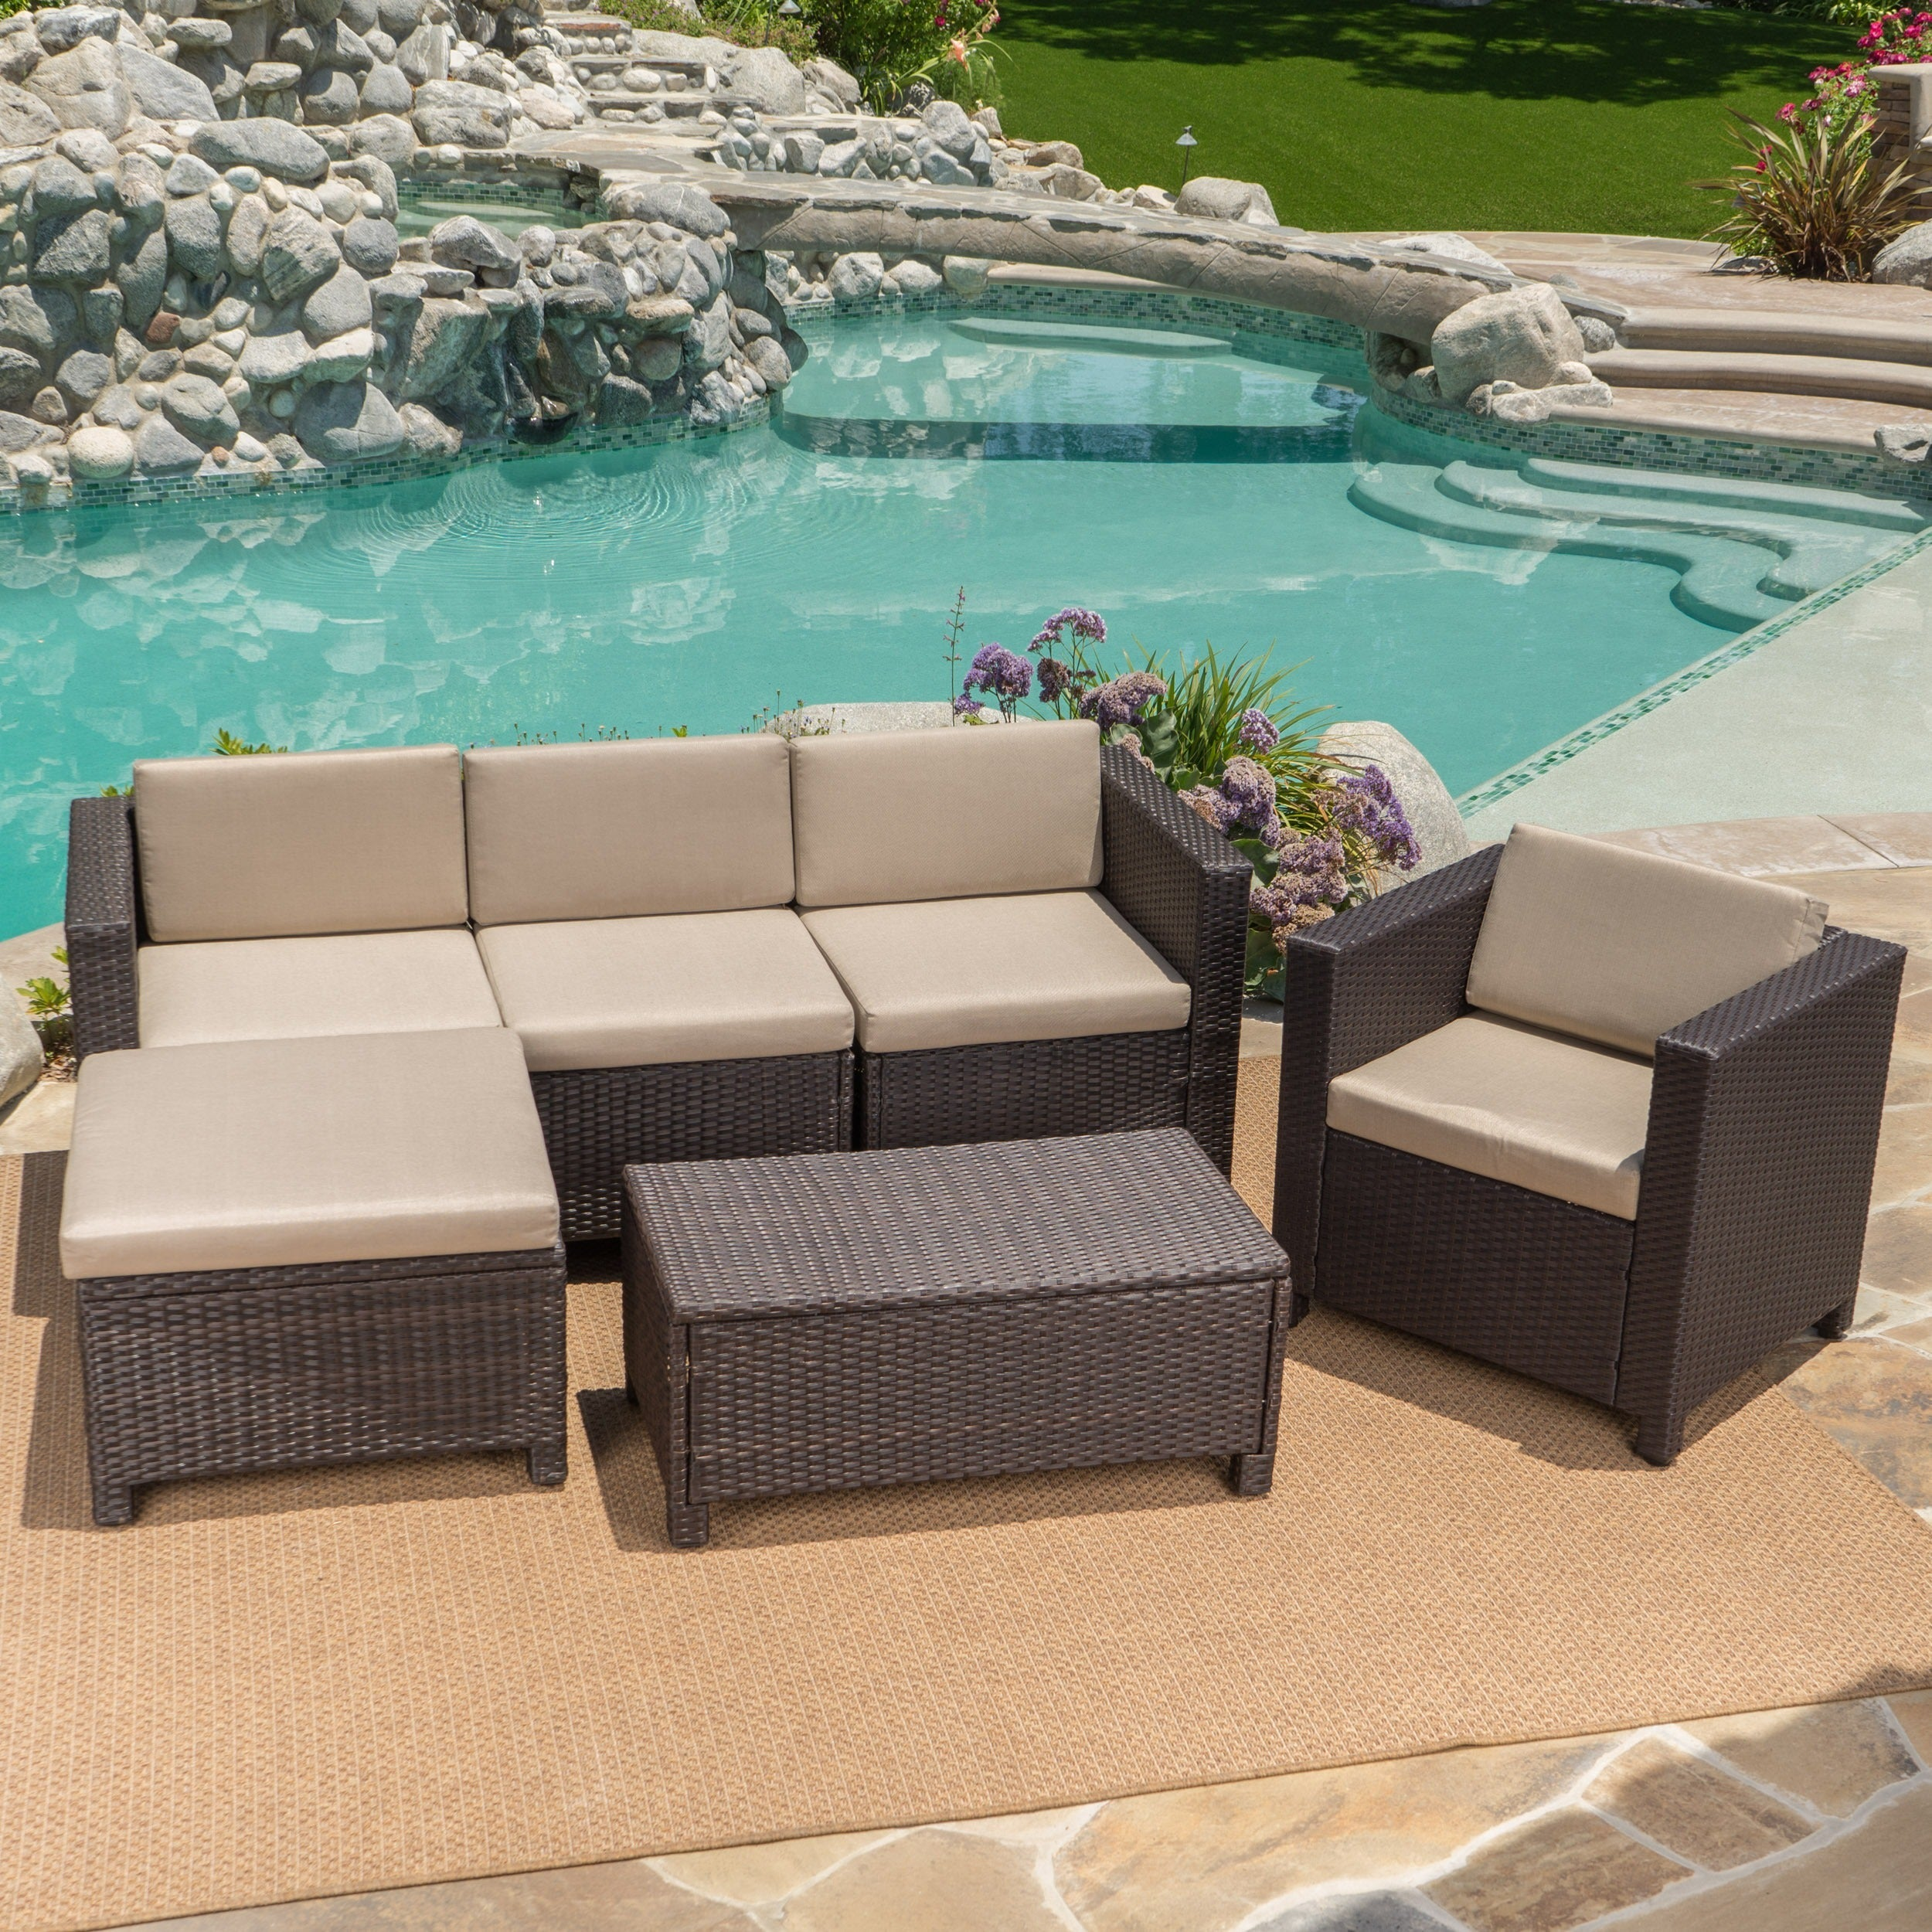 Puerta Outdoor 6 piece Wicker L Shaped Sectional Sofa Set with